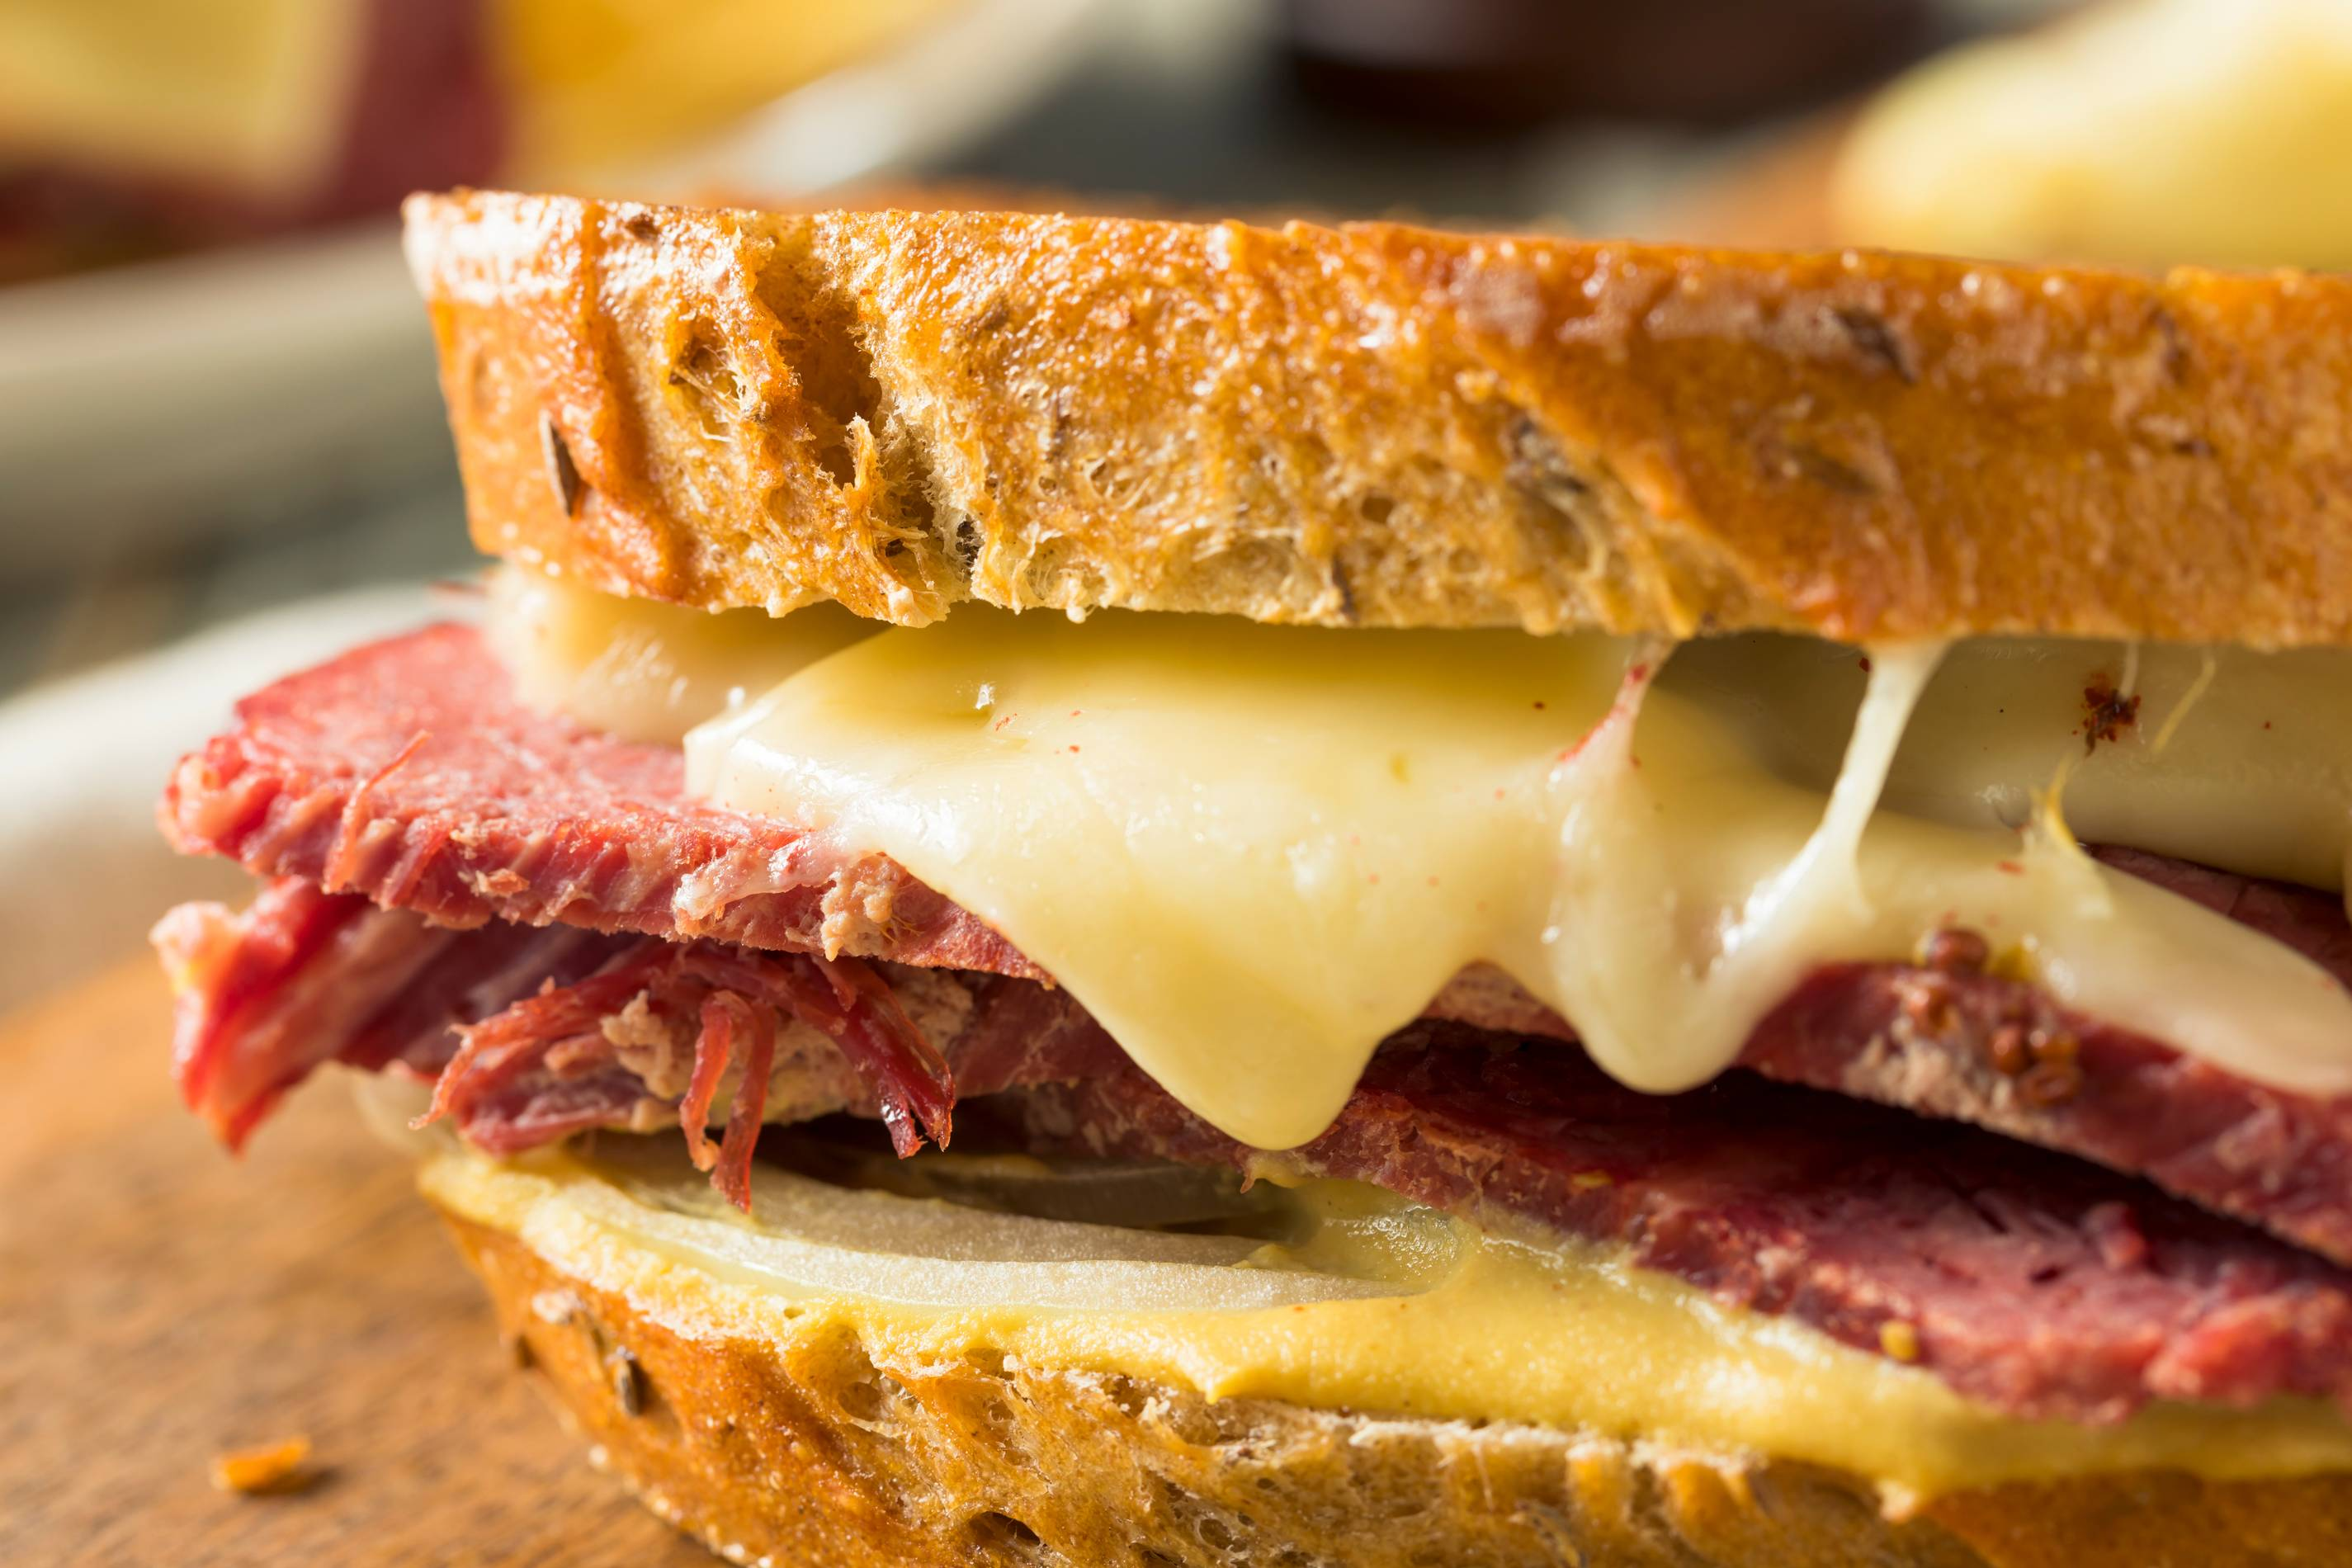 Corned Beef and Sauerkraut Grilled Cheese by Andrea Correale